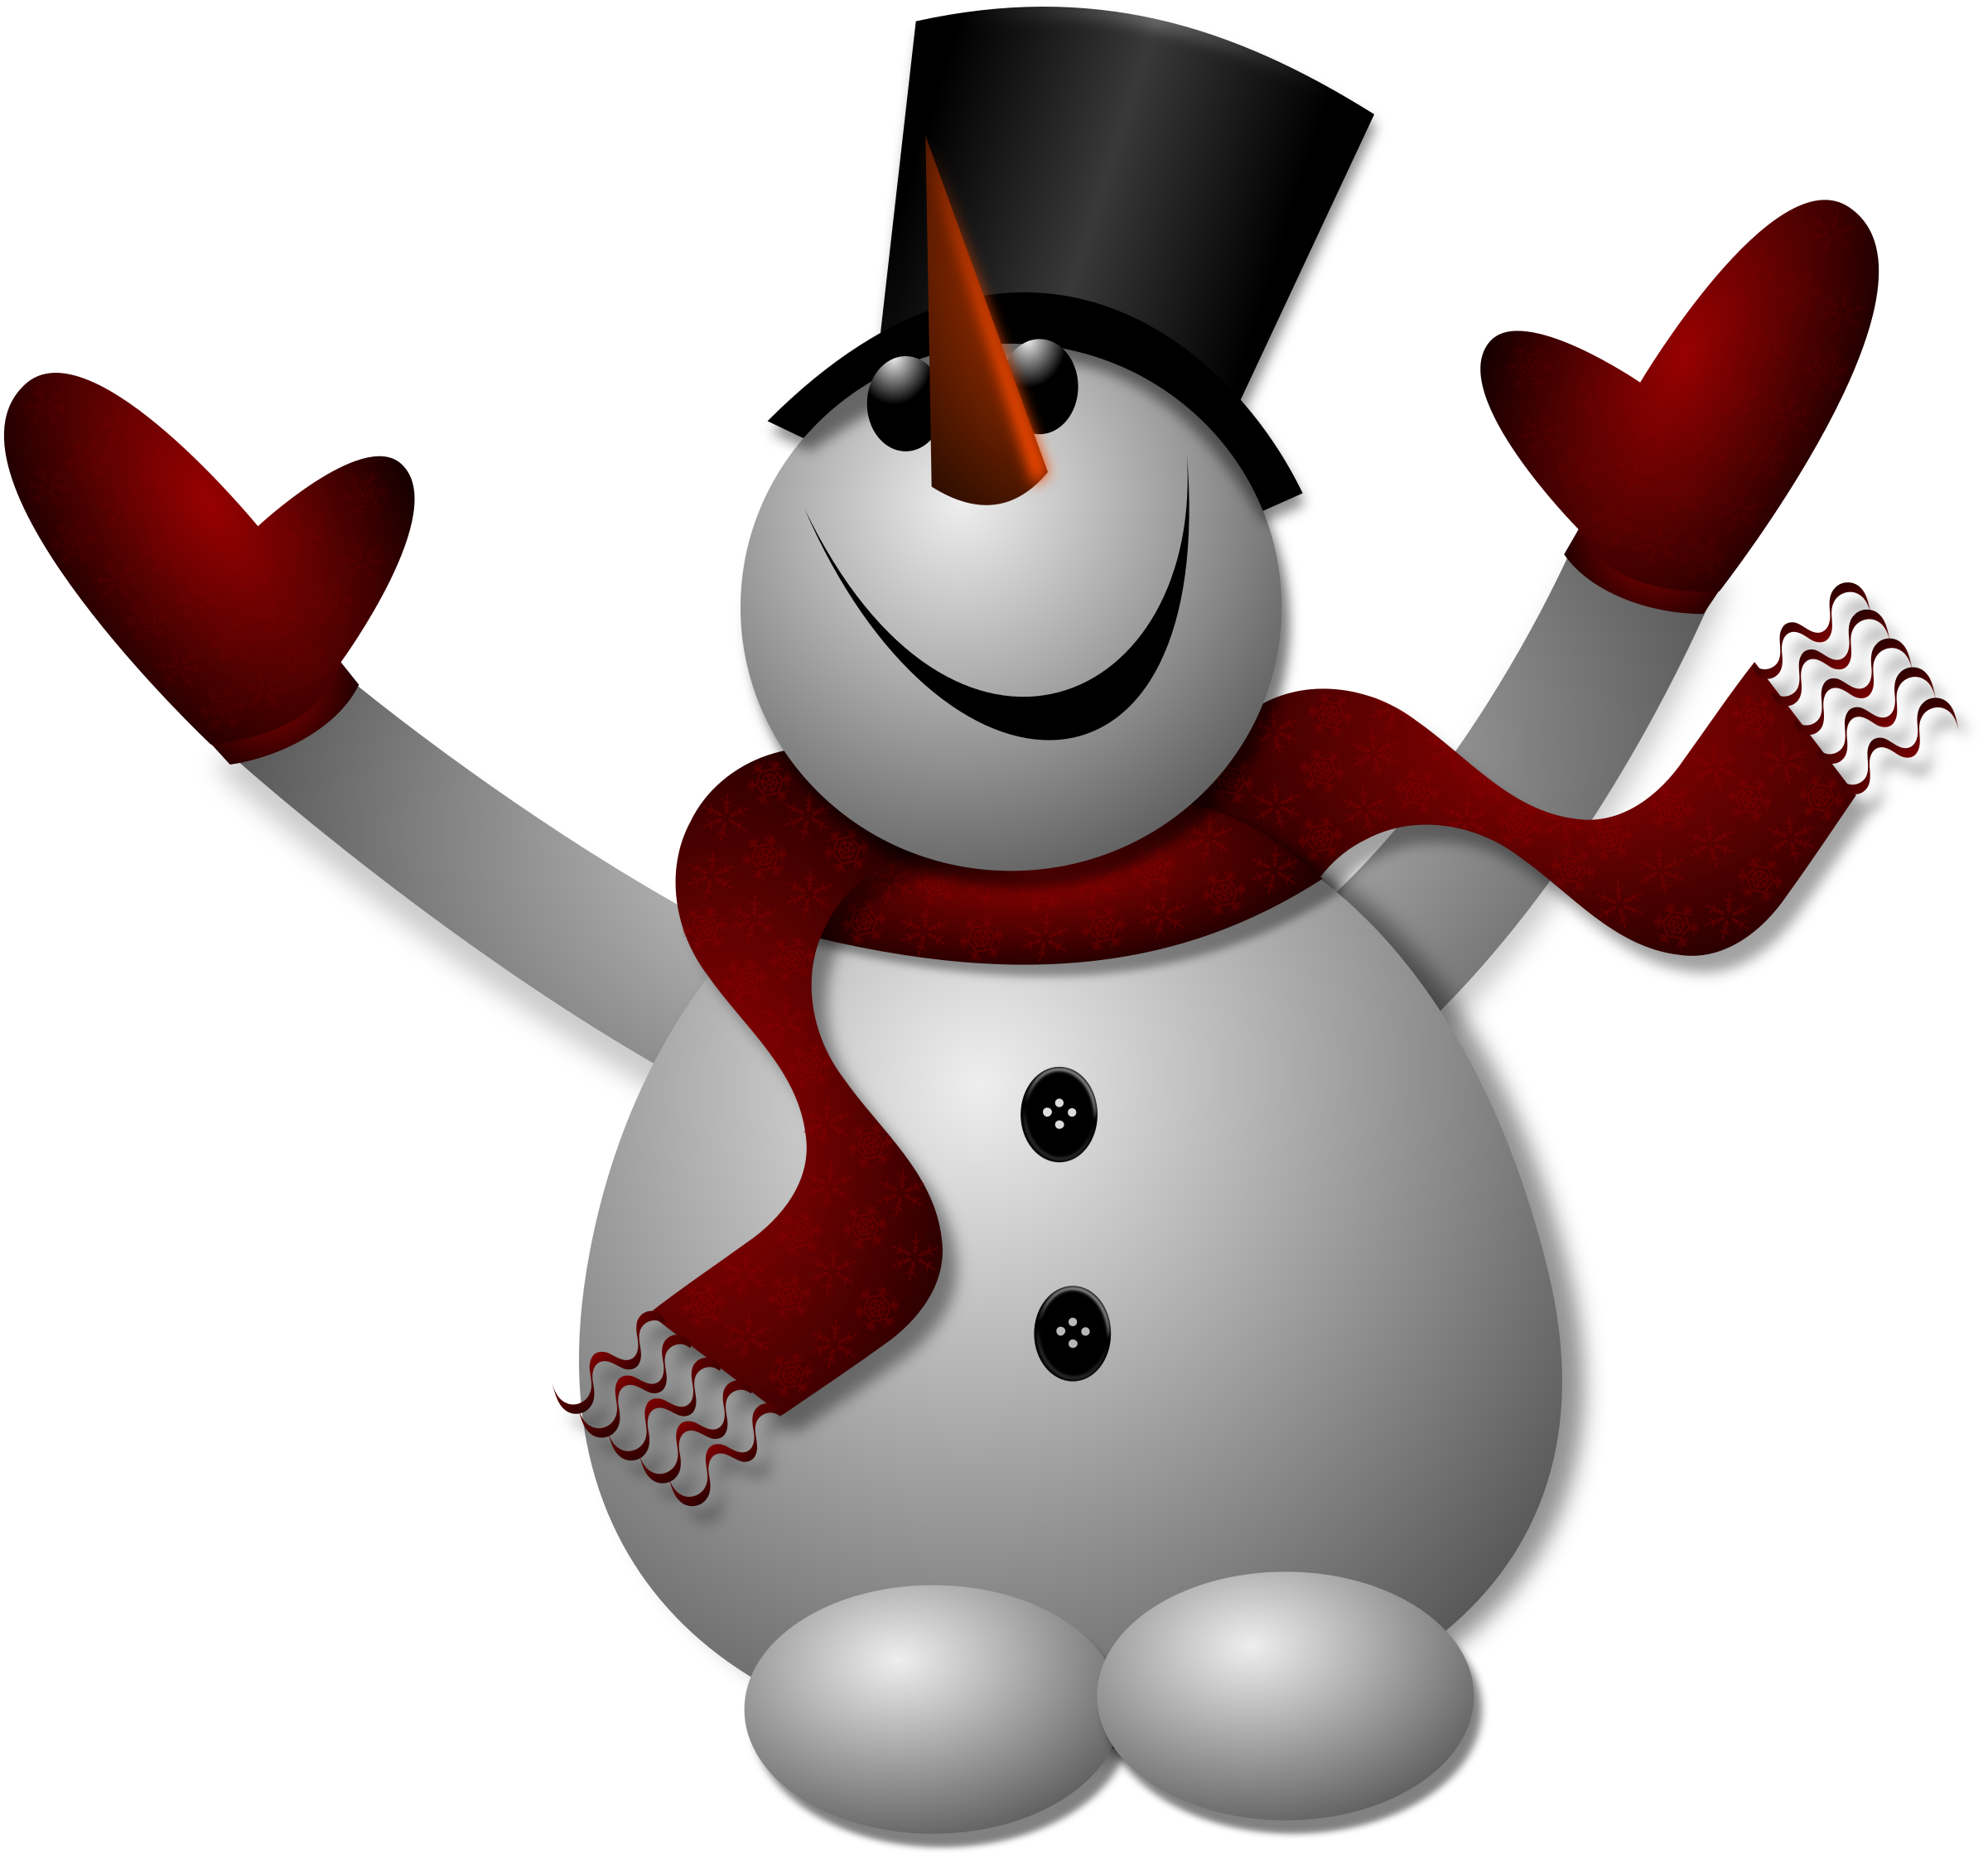 Happy Snowman 1 by Merlin2525